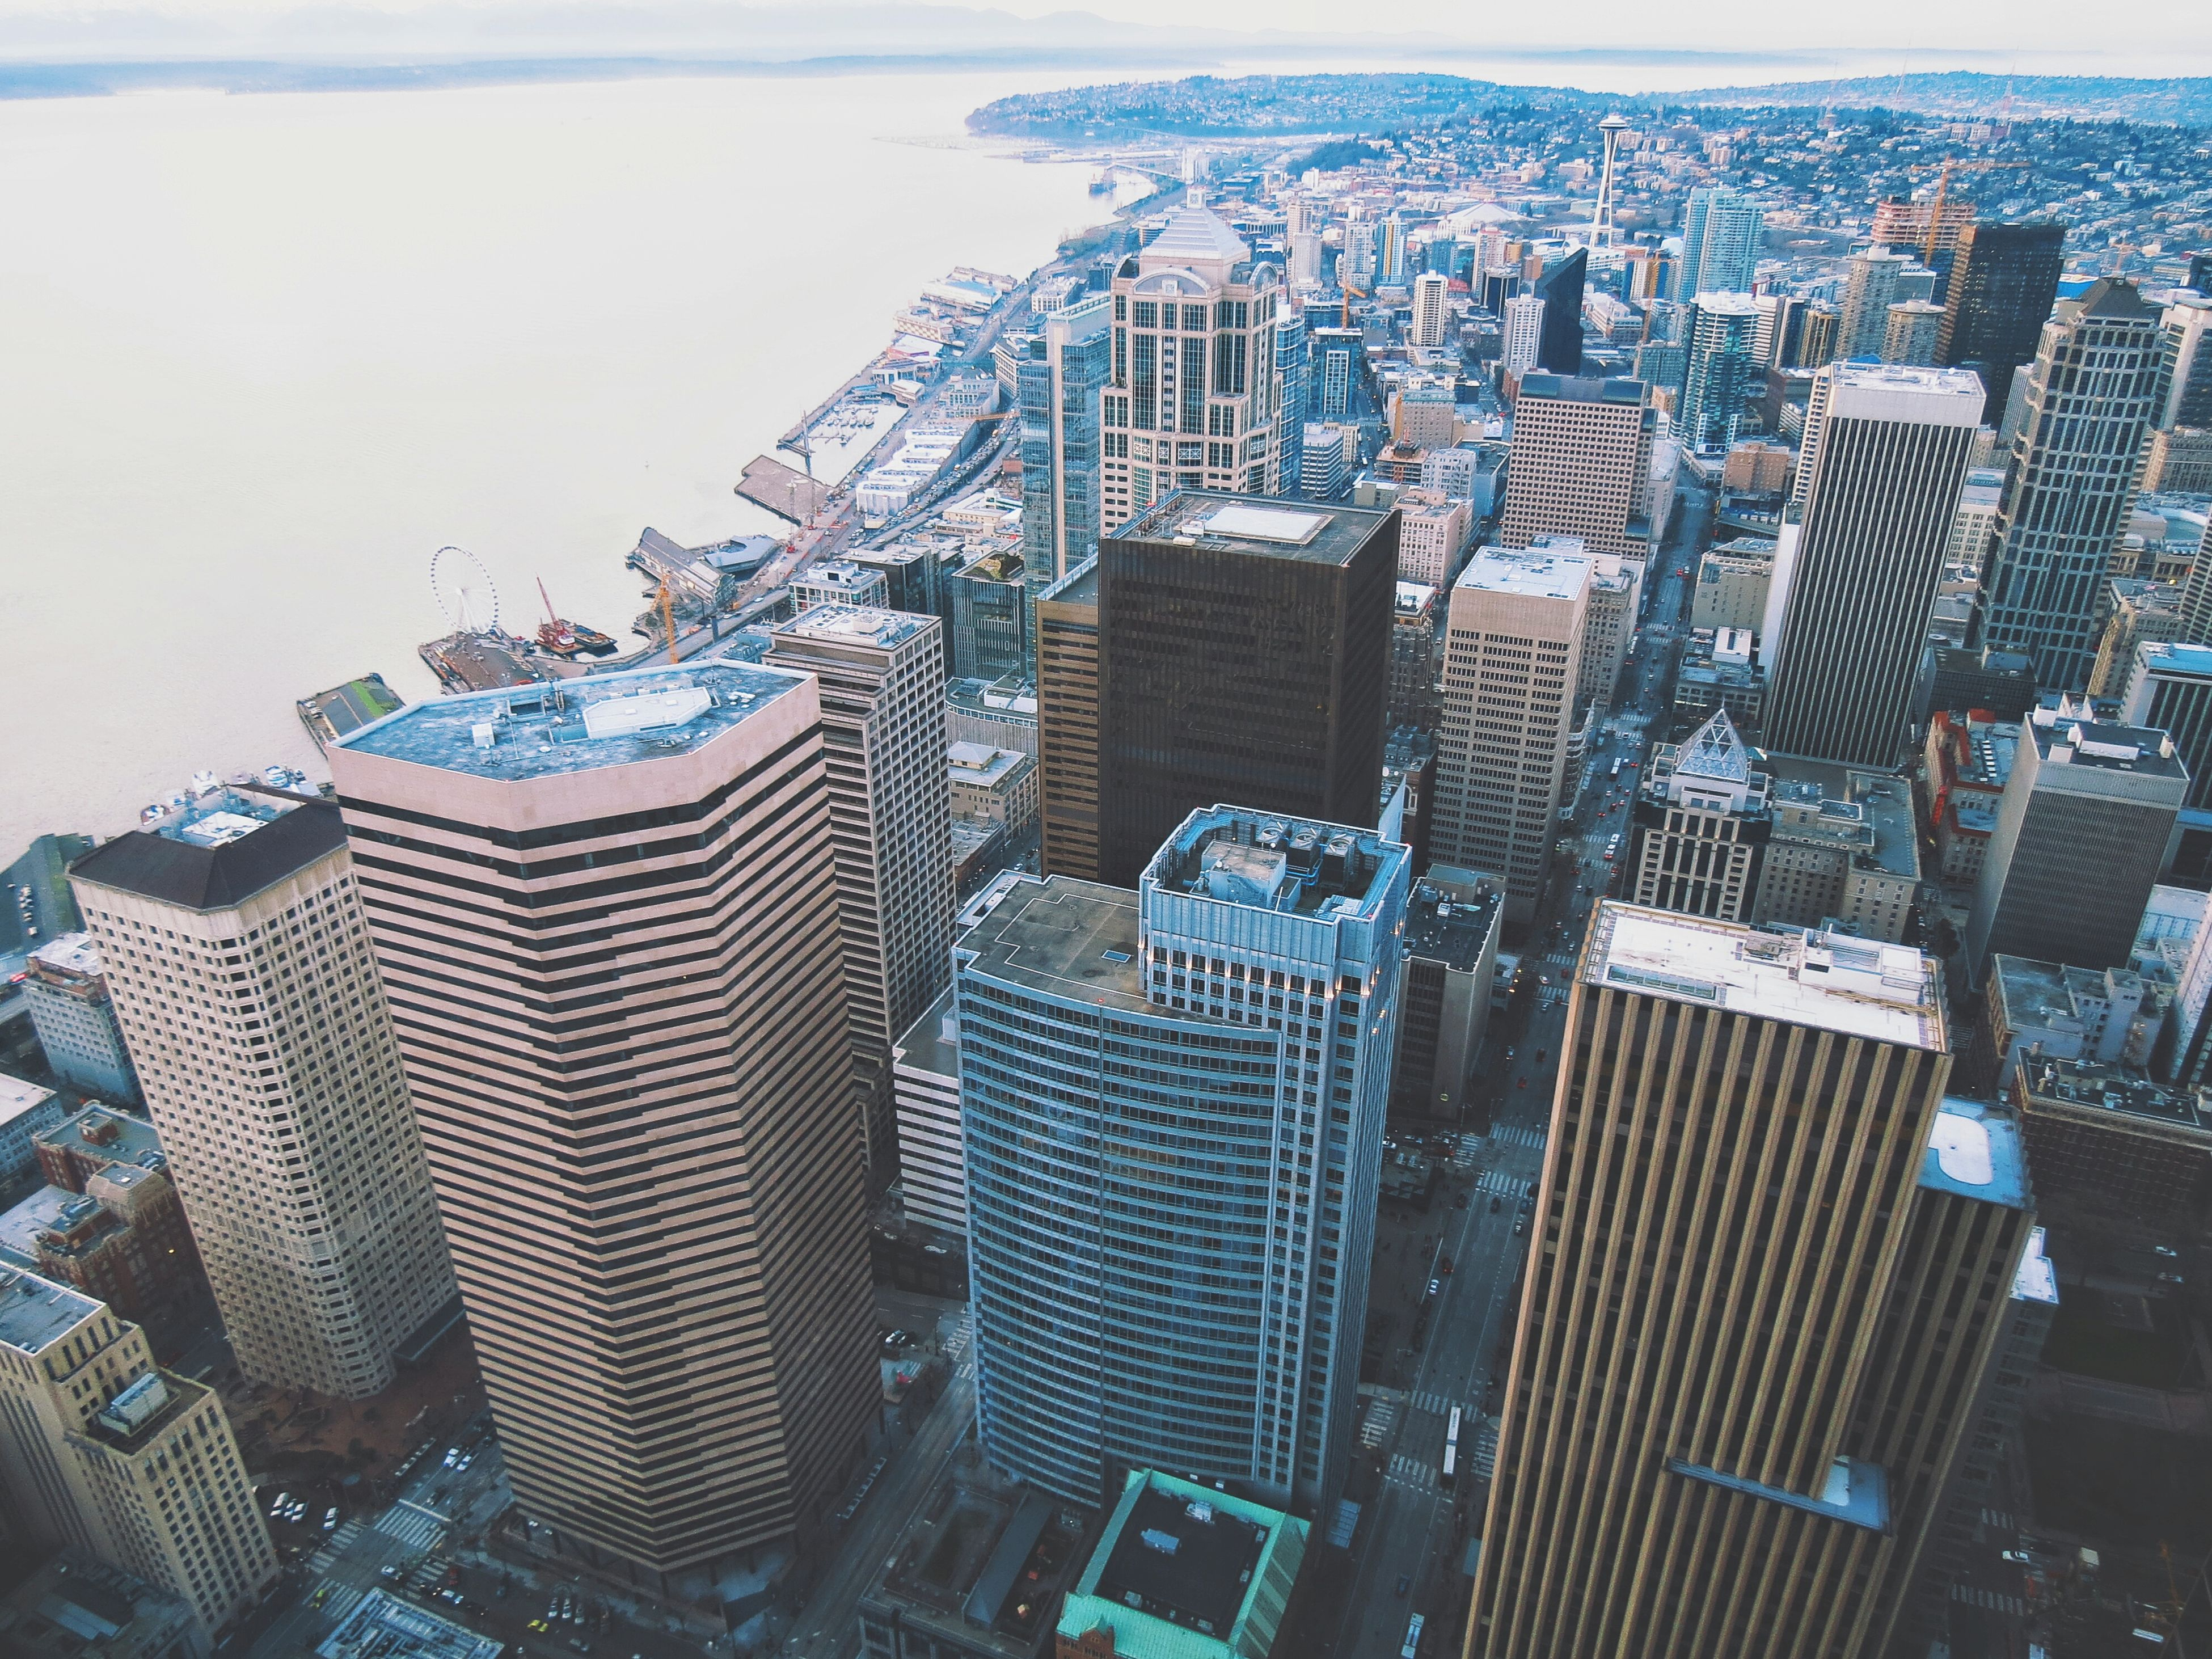 building exterior, architecture, built structure, city, cityscape, high angle view, skyscraper, crowded, tower, tall - high, aerial view, office building, modern, water, residential district, residential building, capital cities, sea, development, city life